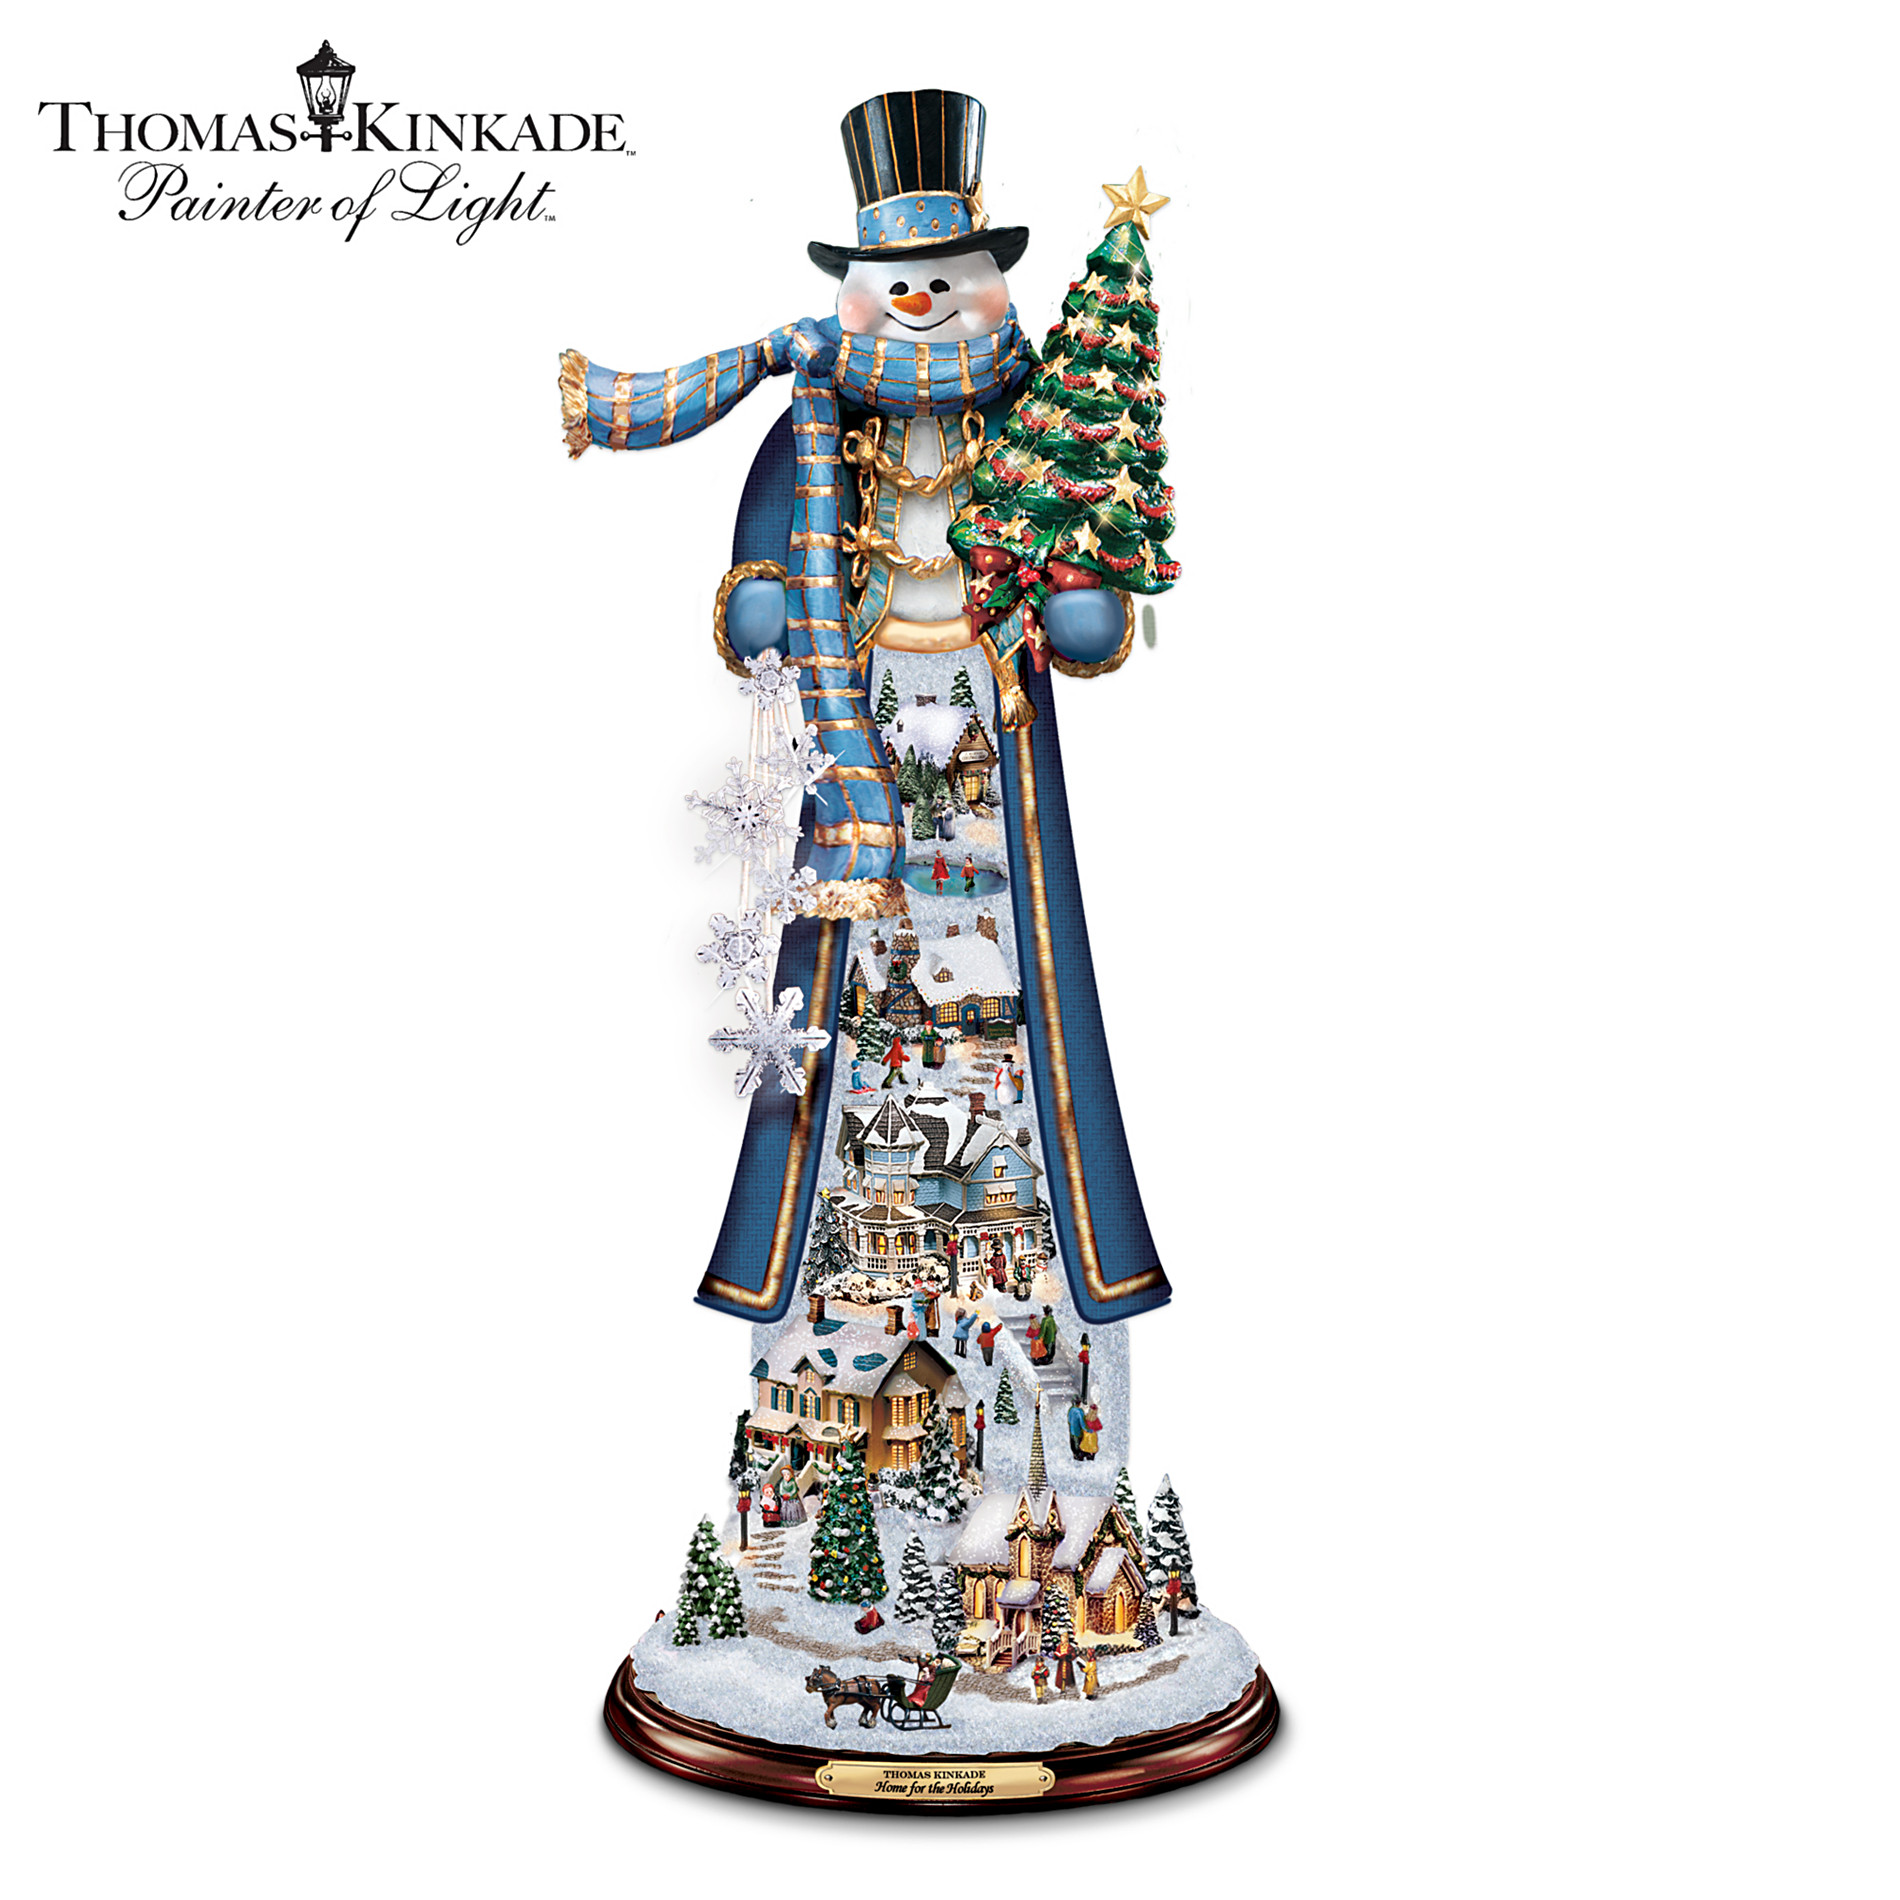 The Bradford Exchange Thomas Kinkade Home For The Holidays Tall Snowman Figurine at Sears.com